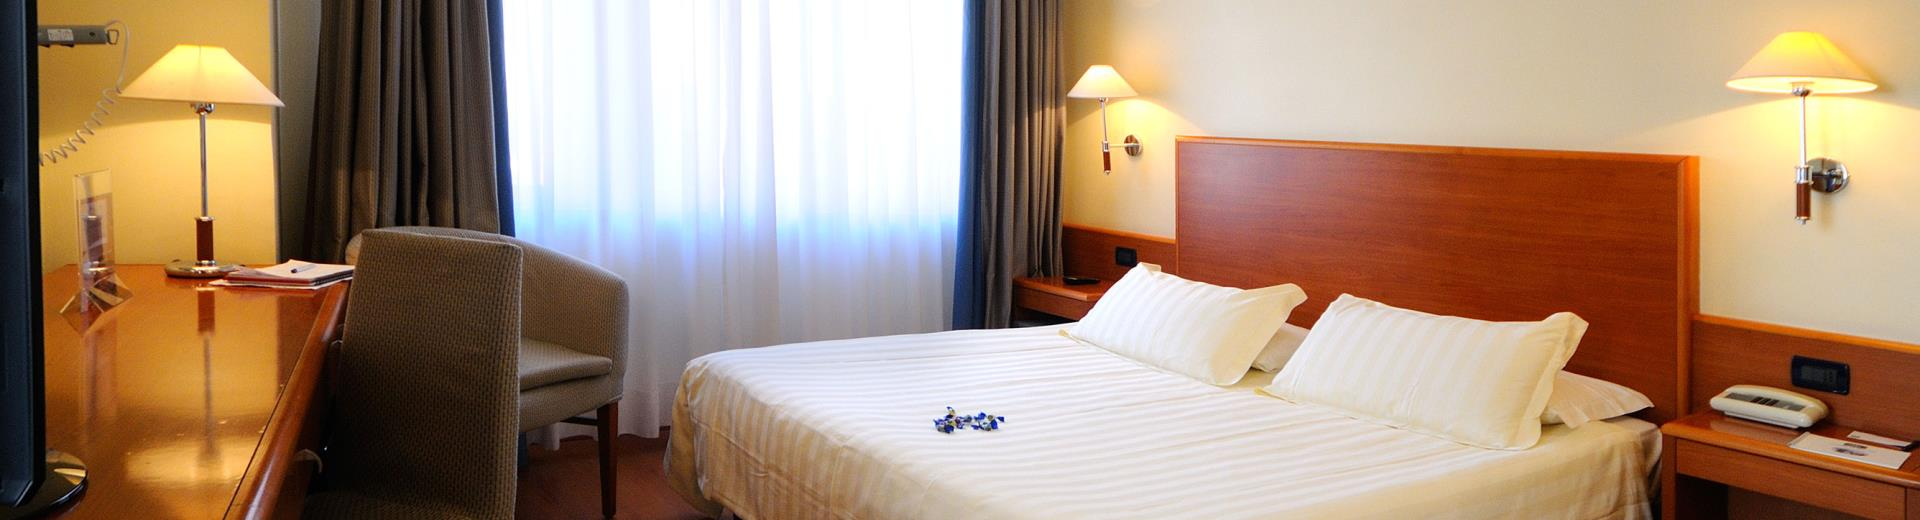 Standard room type Working, Best Western Globus Hotel Rome, 3 stars.